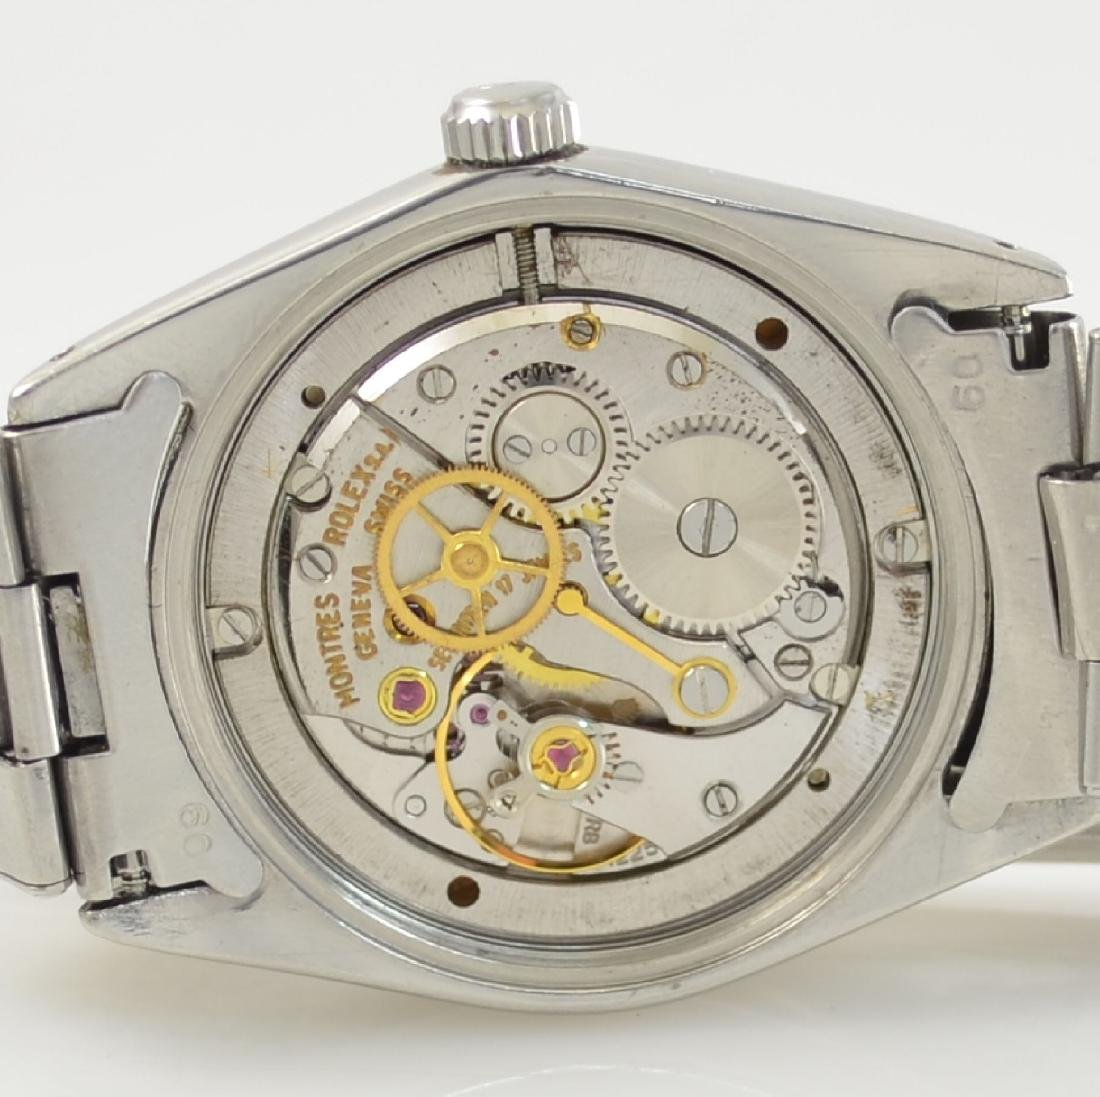 ROLEX Precision reference 6694 gents wristwatch - 10